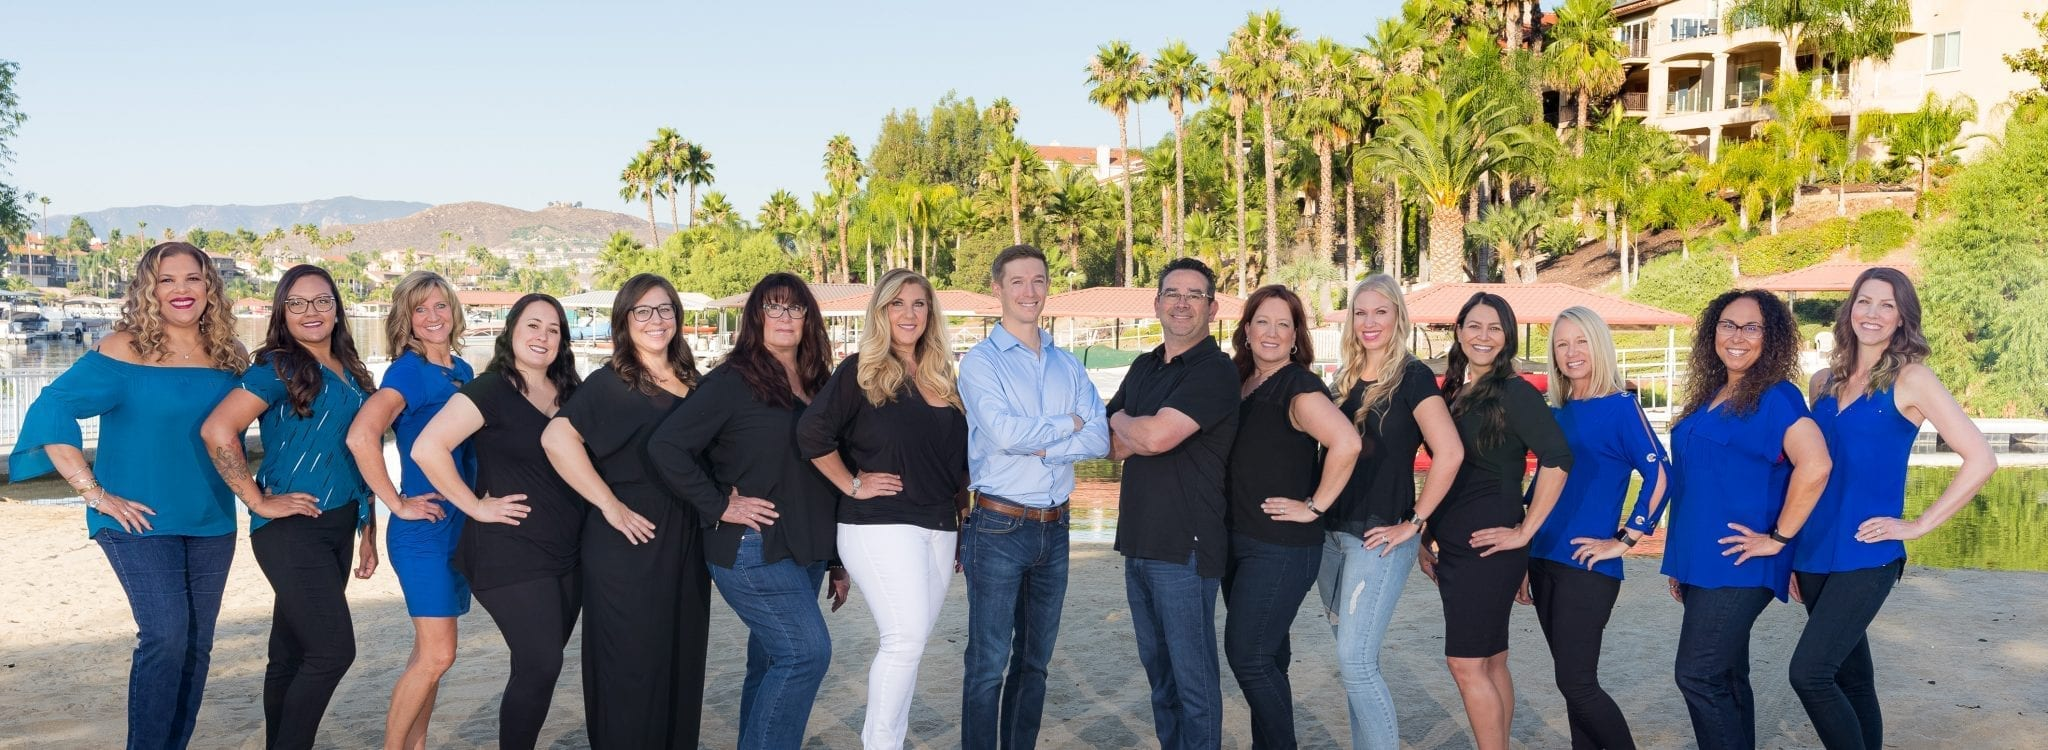 Family Dentist Team in Lake Elsinore - Lakefront Family Dentistry - Dr. Hauser - Dr. Phillipe